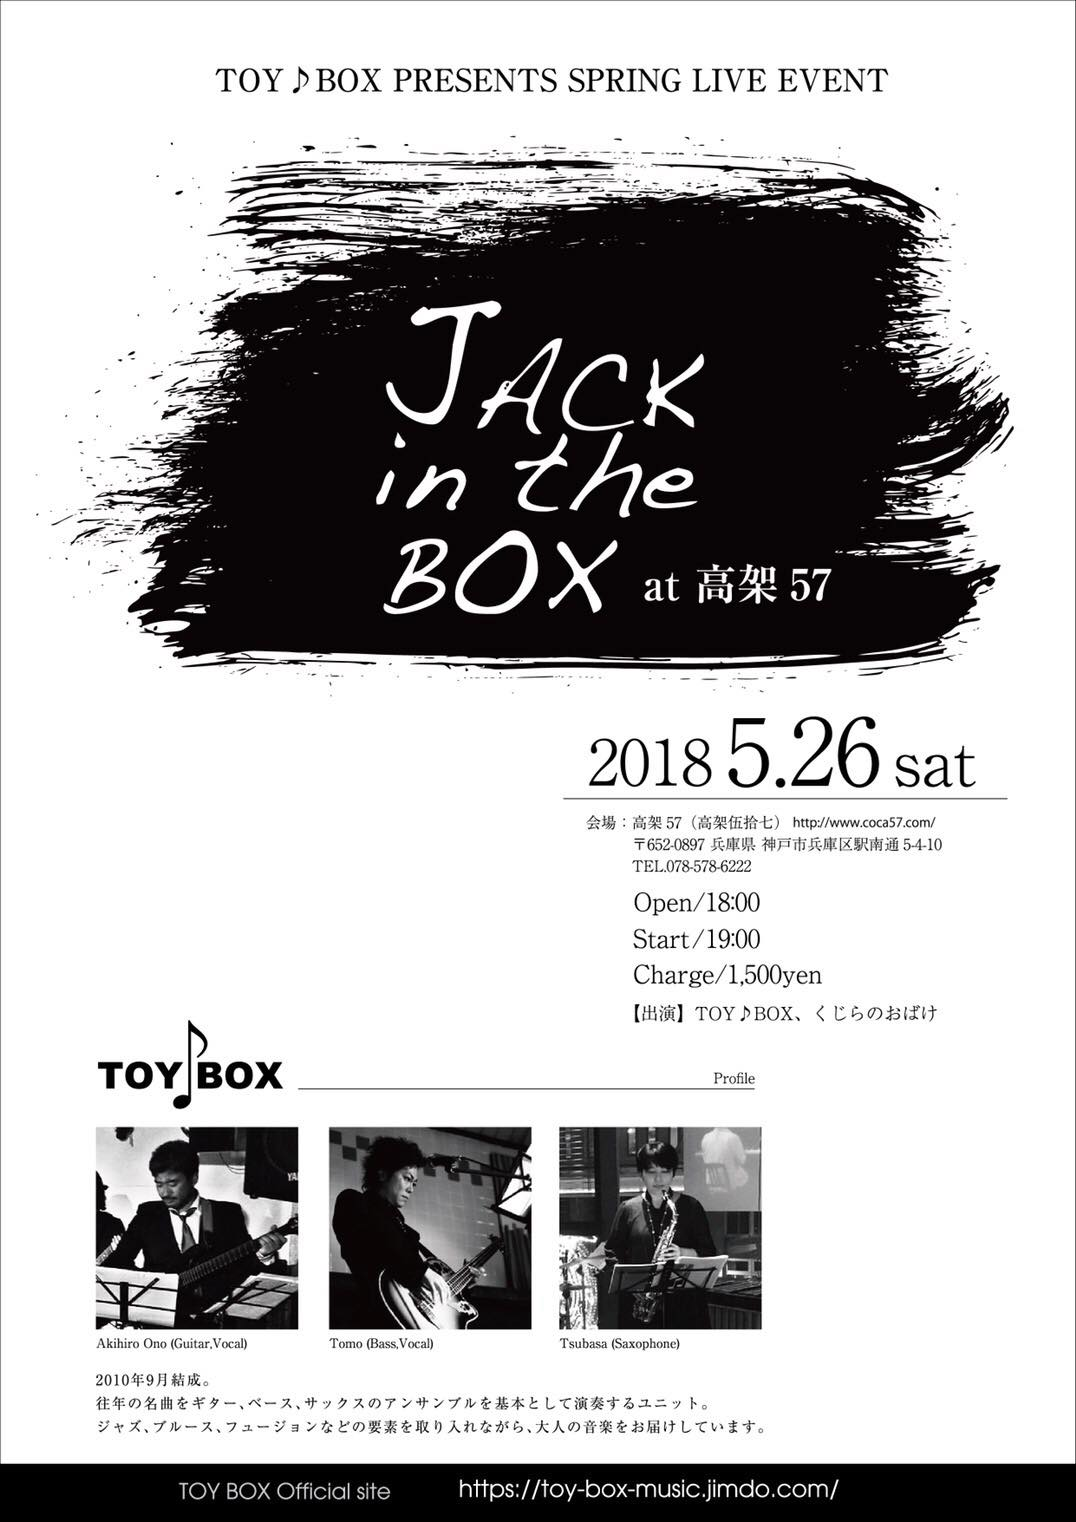 Jakc-in-the-Box Live